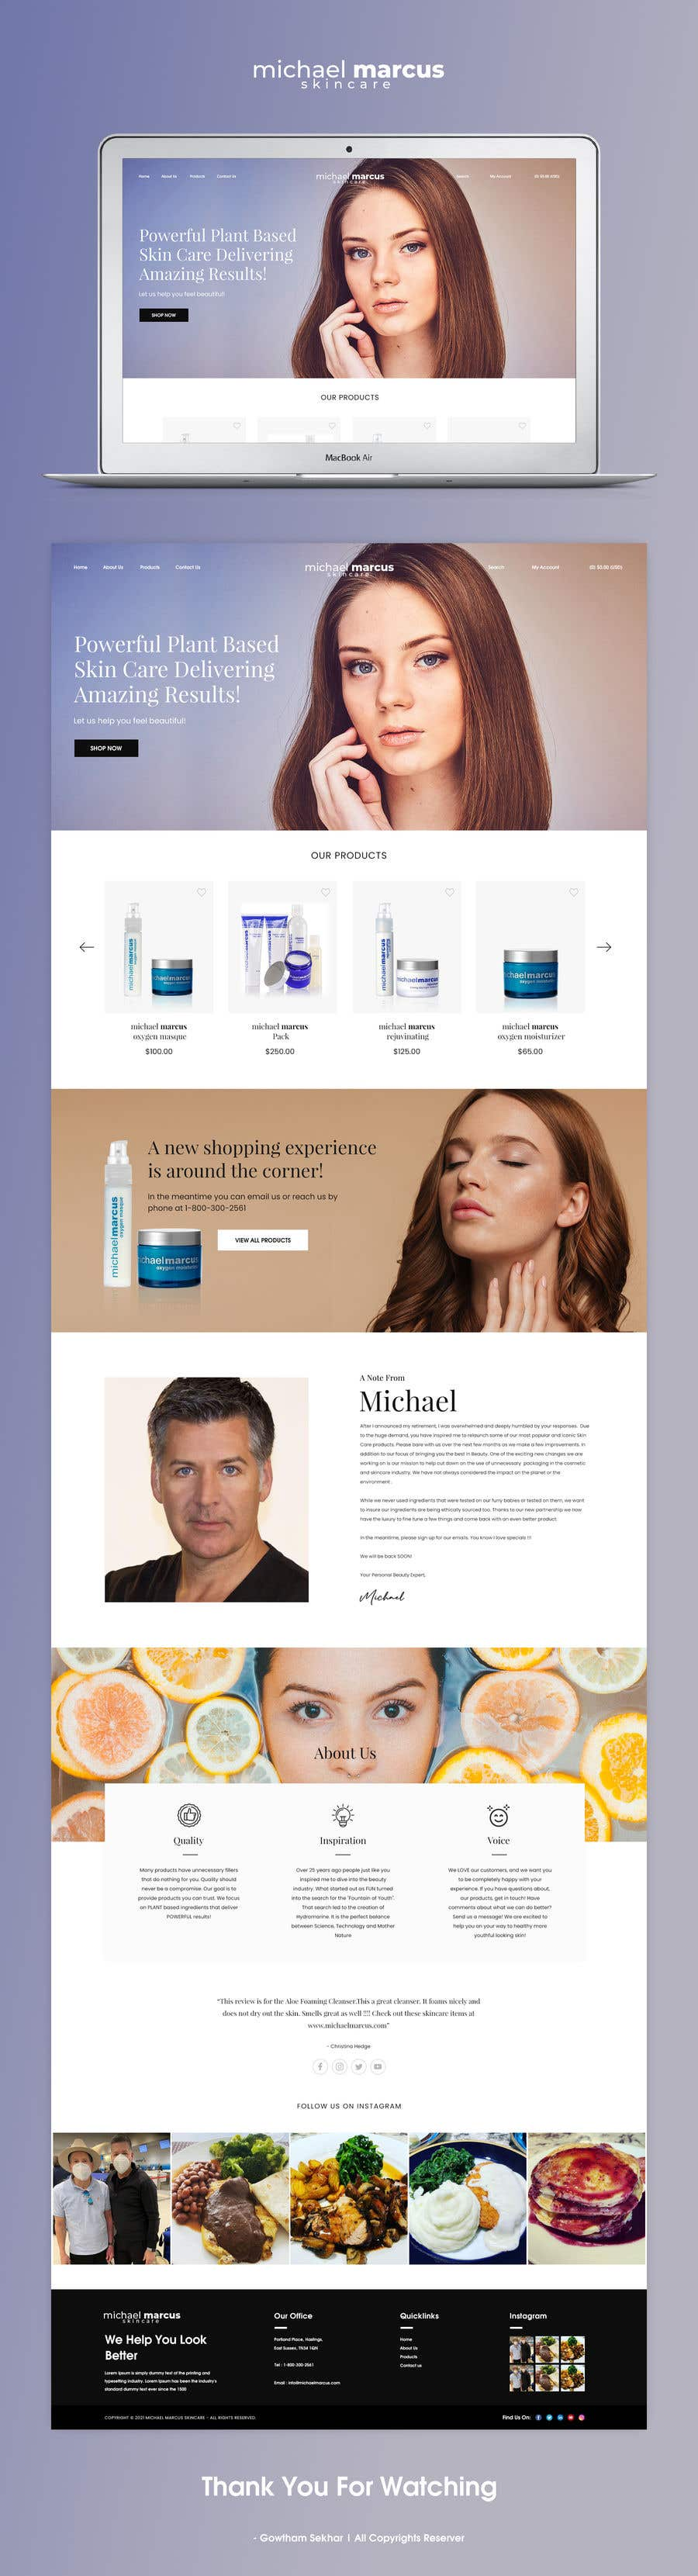 Contest Entry #                                        74                                      for                                         Michael Marcus Cosmetic rebrand and launch via shoppify